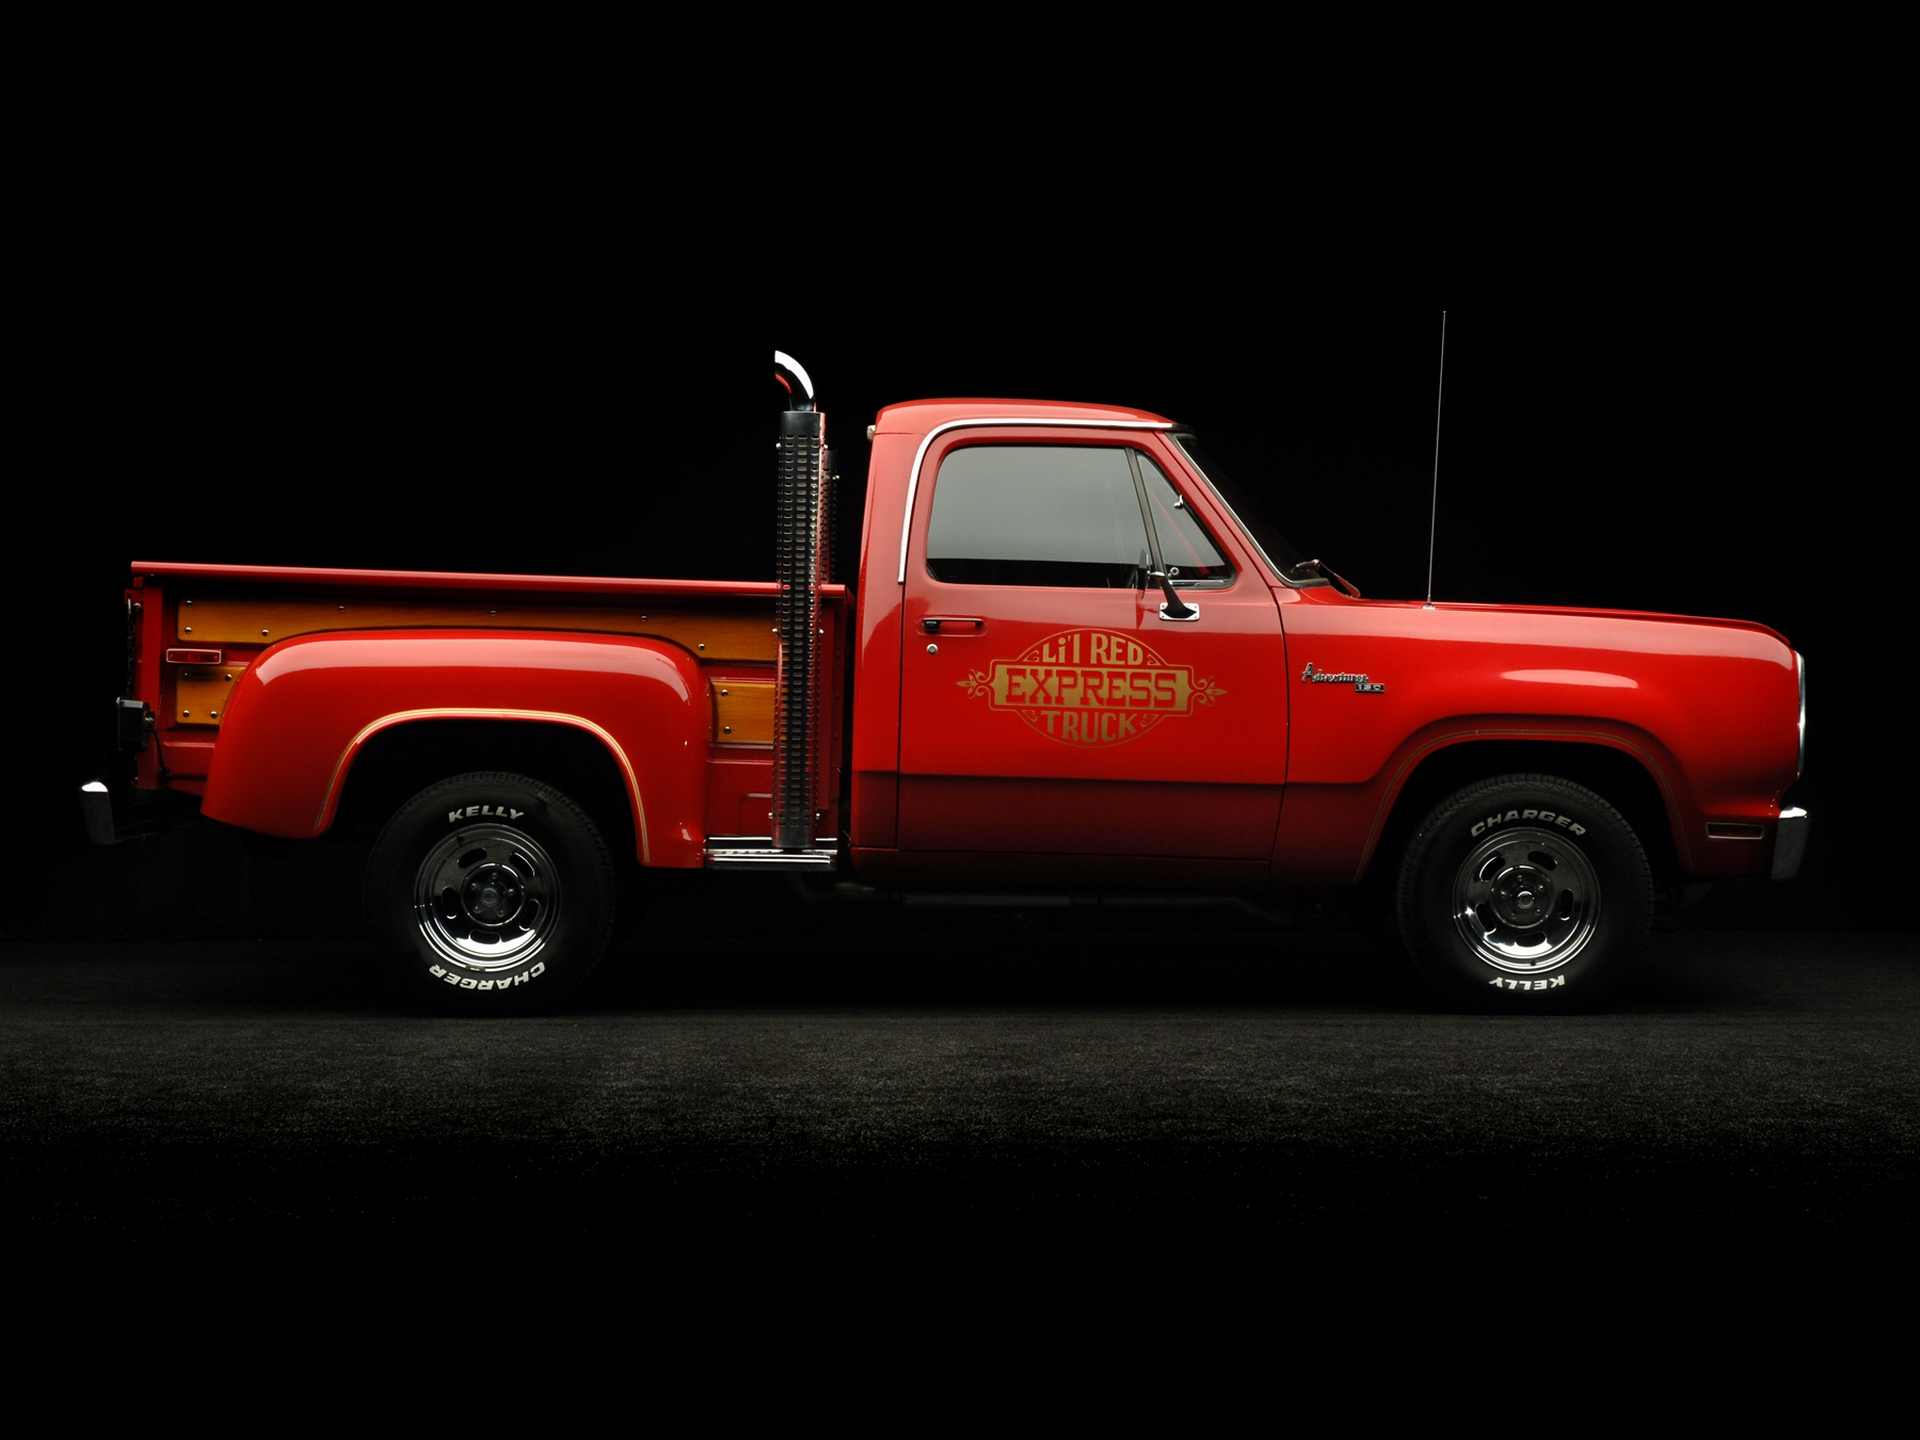 Classic Truck HD Images Wallpapers 9352   Amazing Wallpaperz 1920x1440